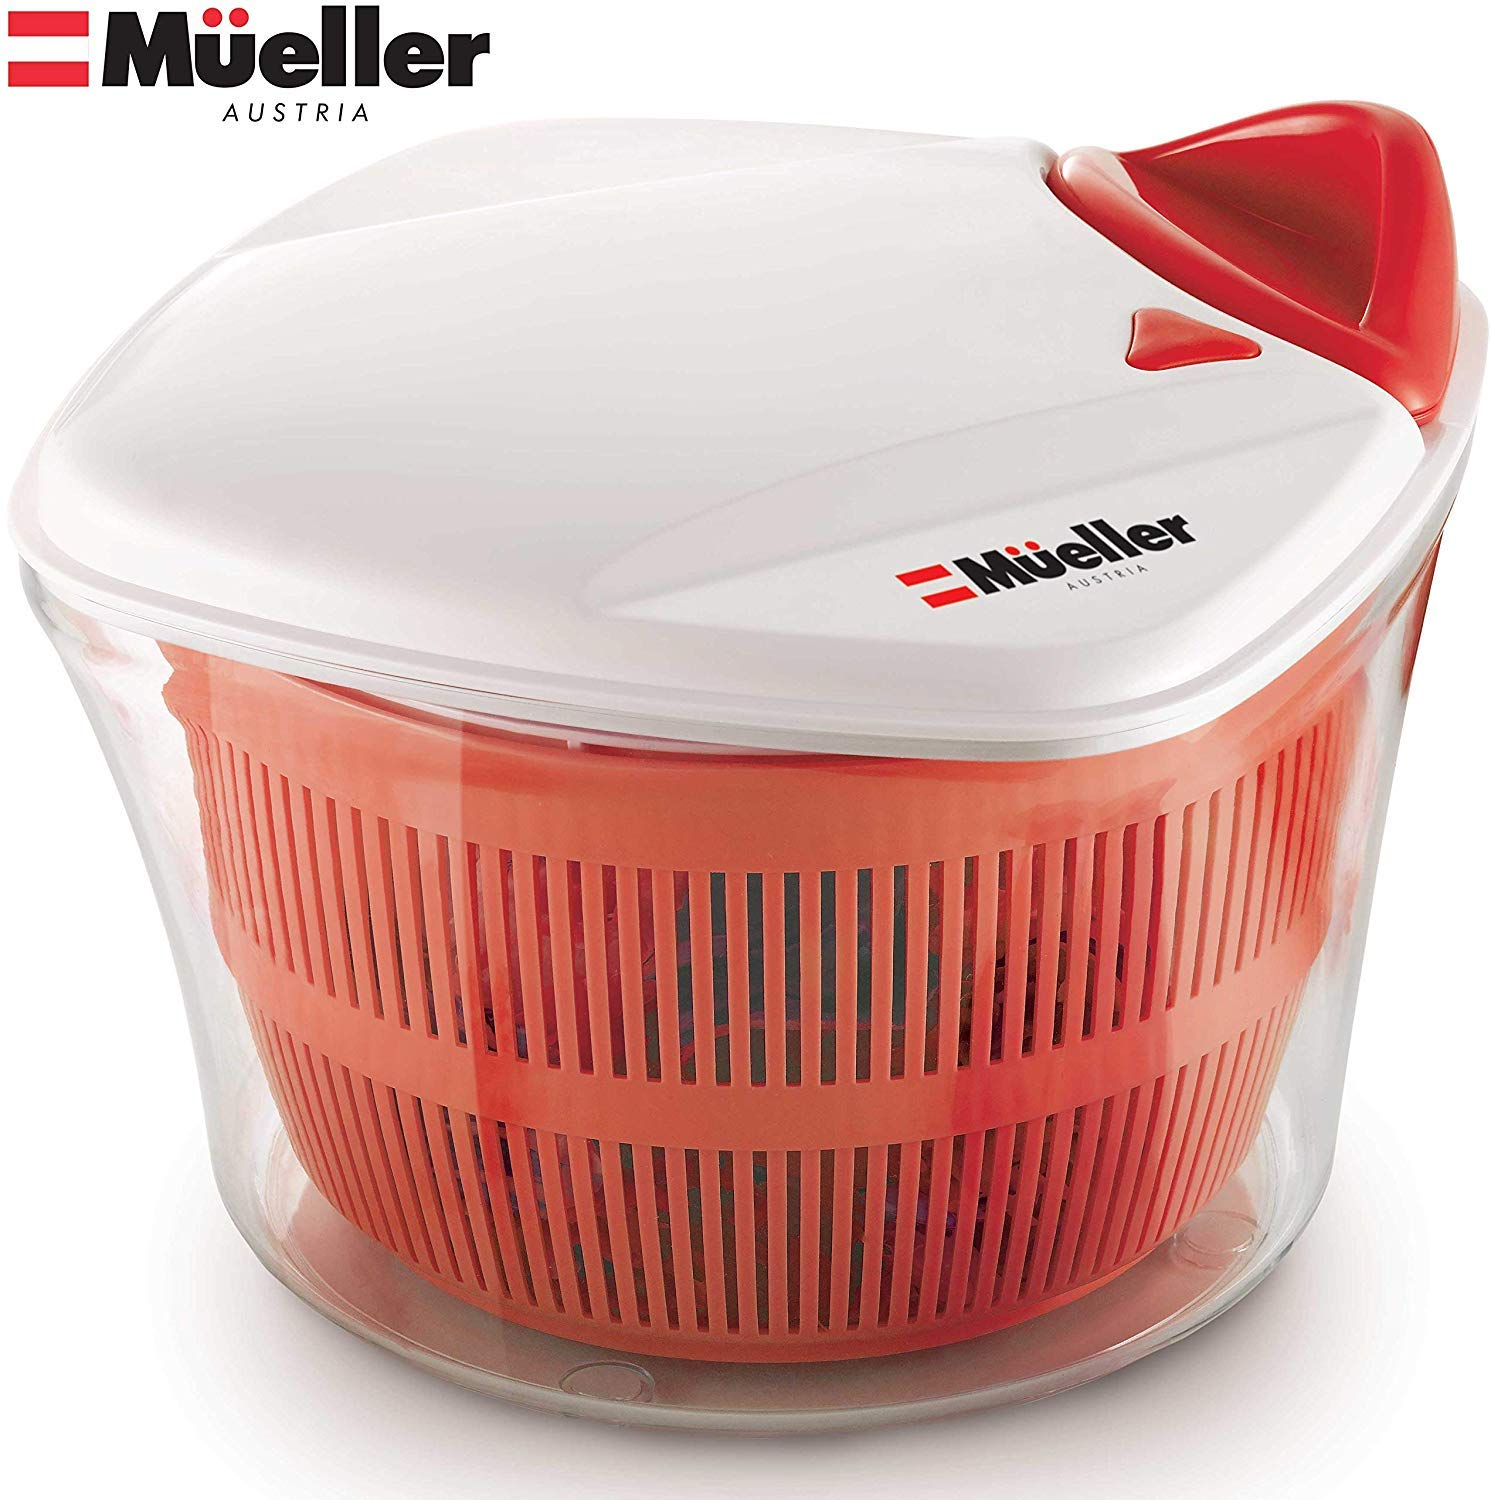 MUELLER Vegetable Anti Wobble Lockable Colander